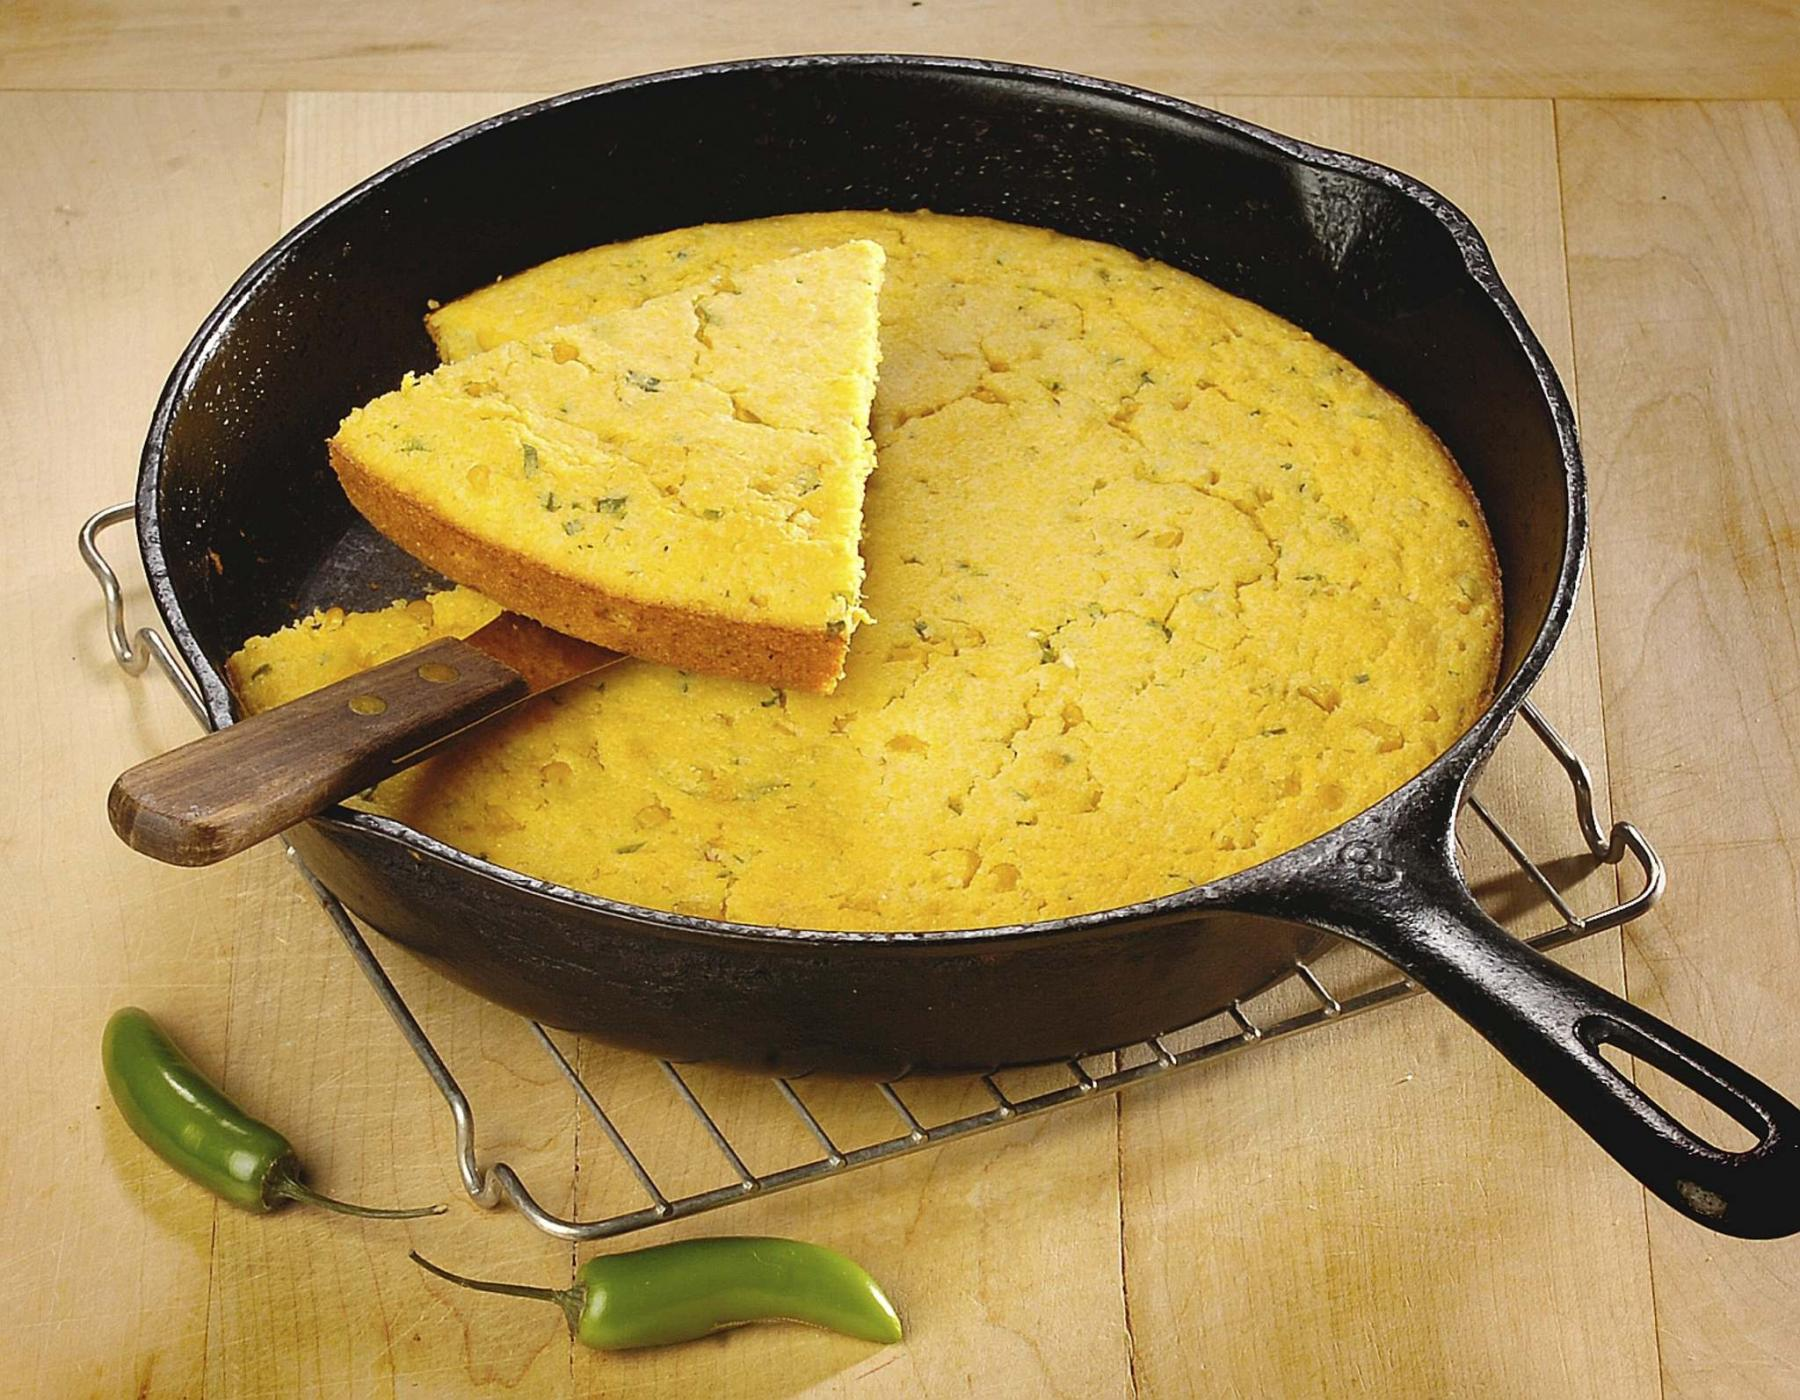 <p>Peter Battistoni / Vancouver Sun</p><p>You can use vegetable oil and heat to clean your cast-iron frying pan, or even scrub it with coarse salt and a potato cut in half. </p>